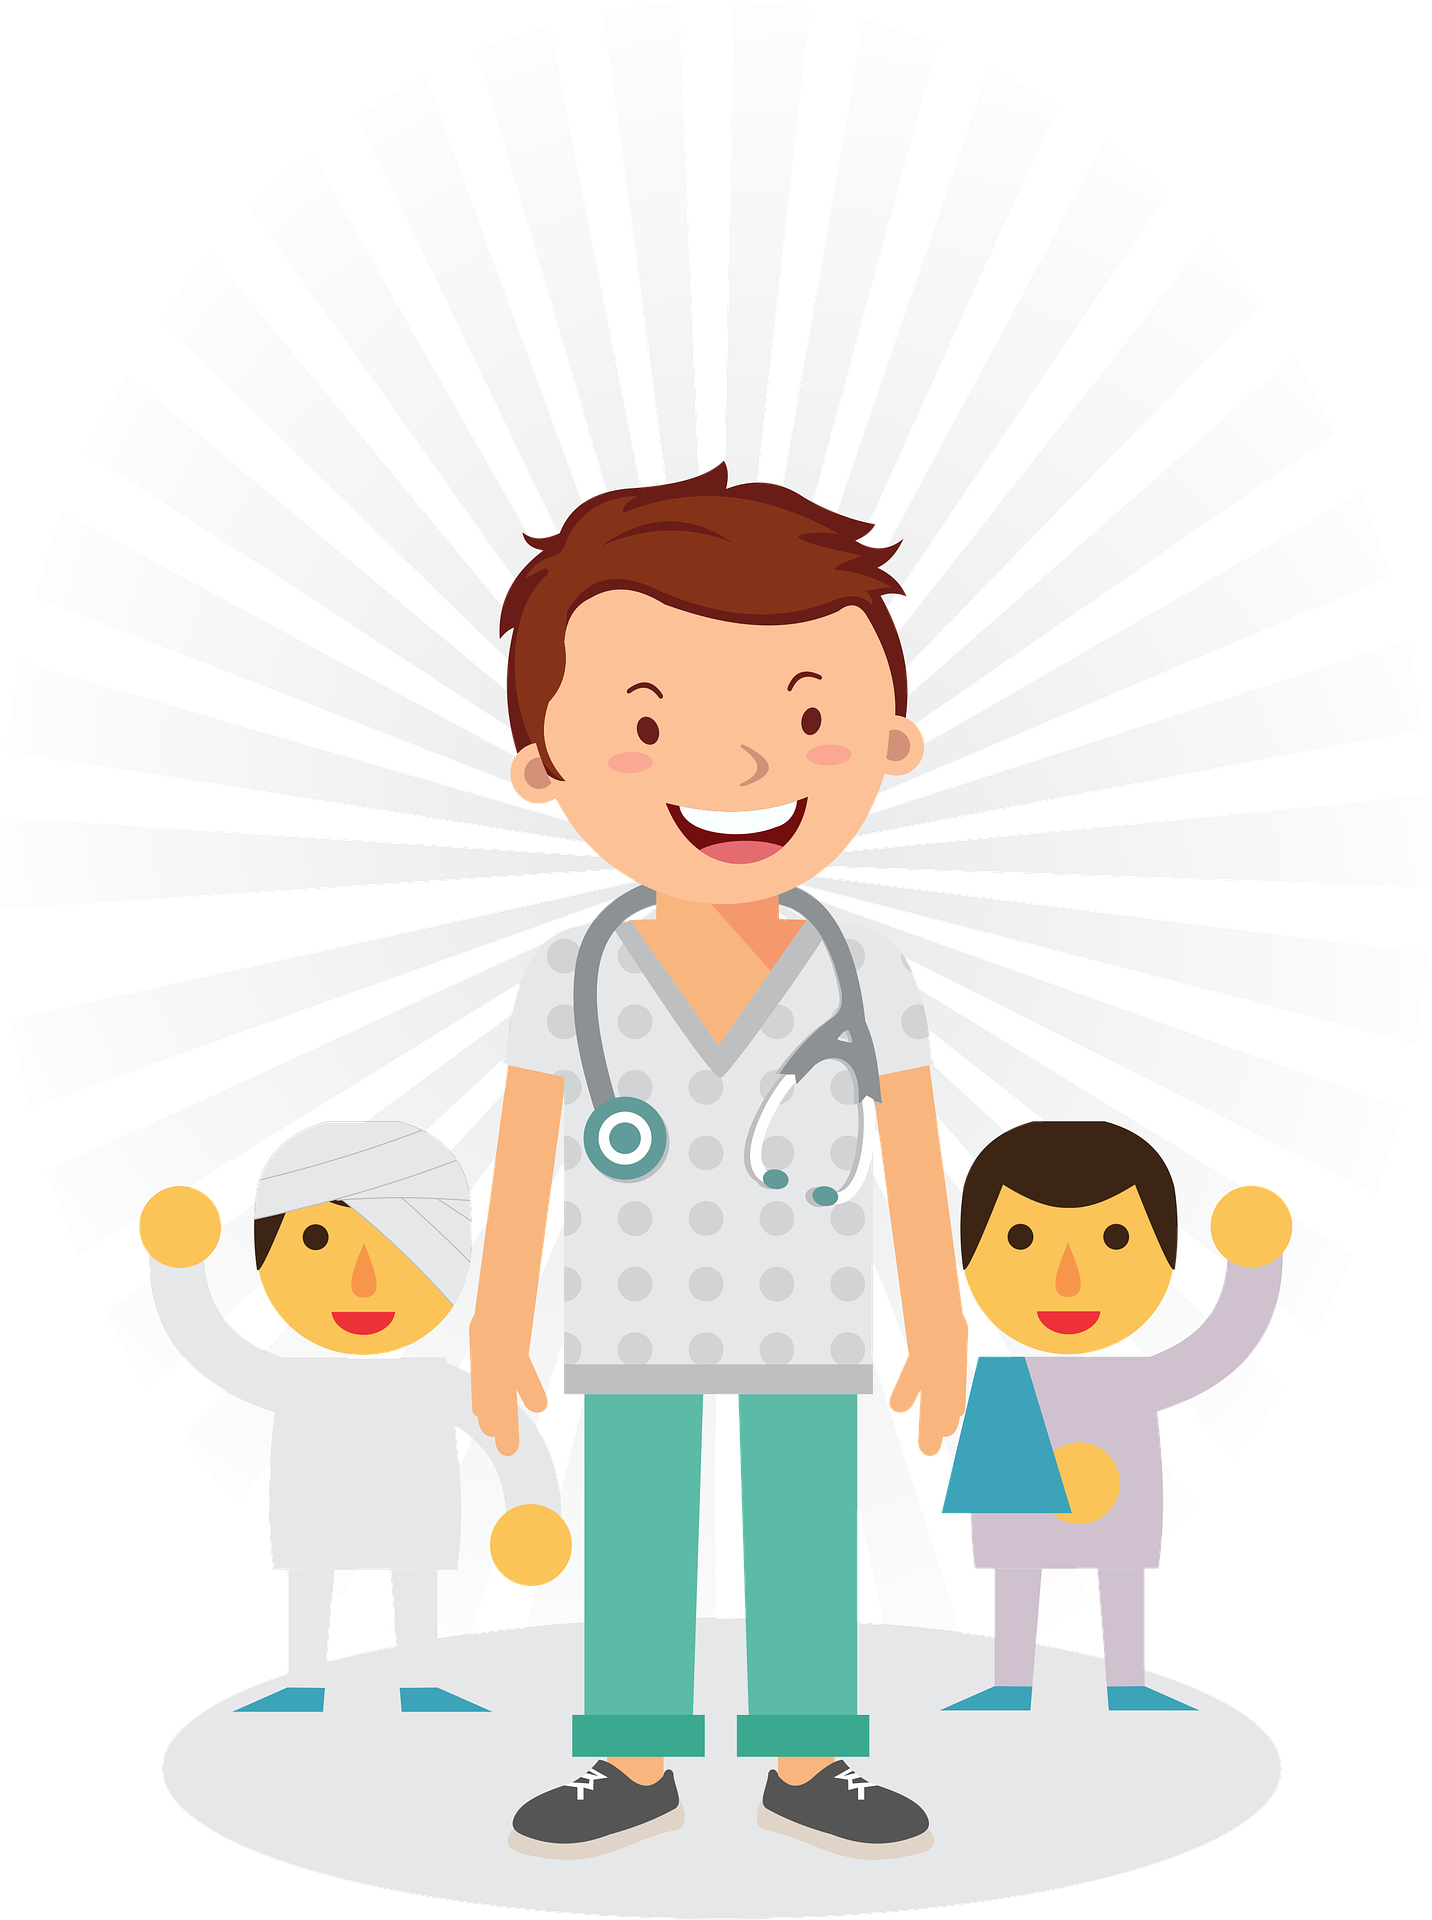 Professional clipart career guidance. Jdocs for doctors interested